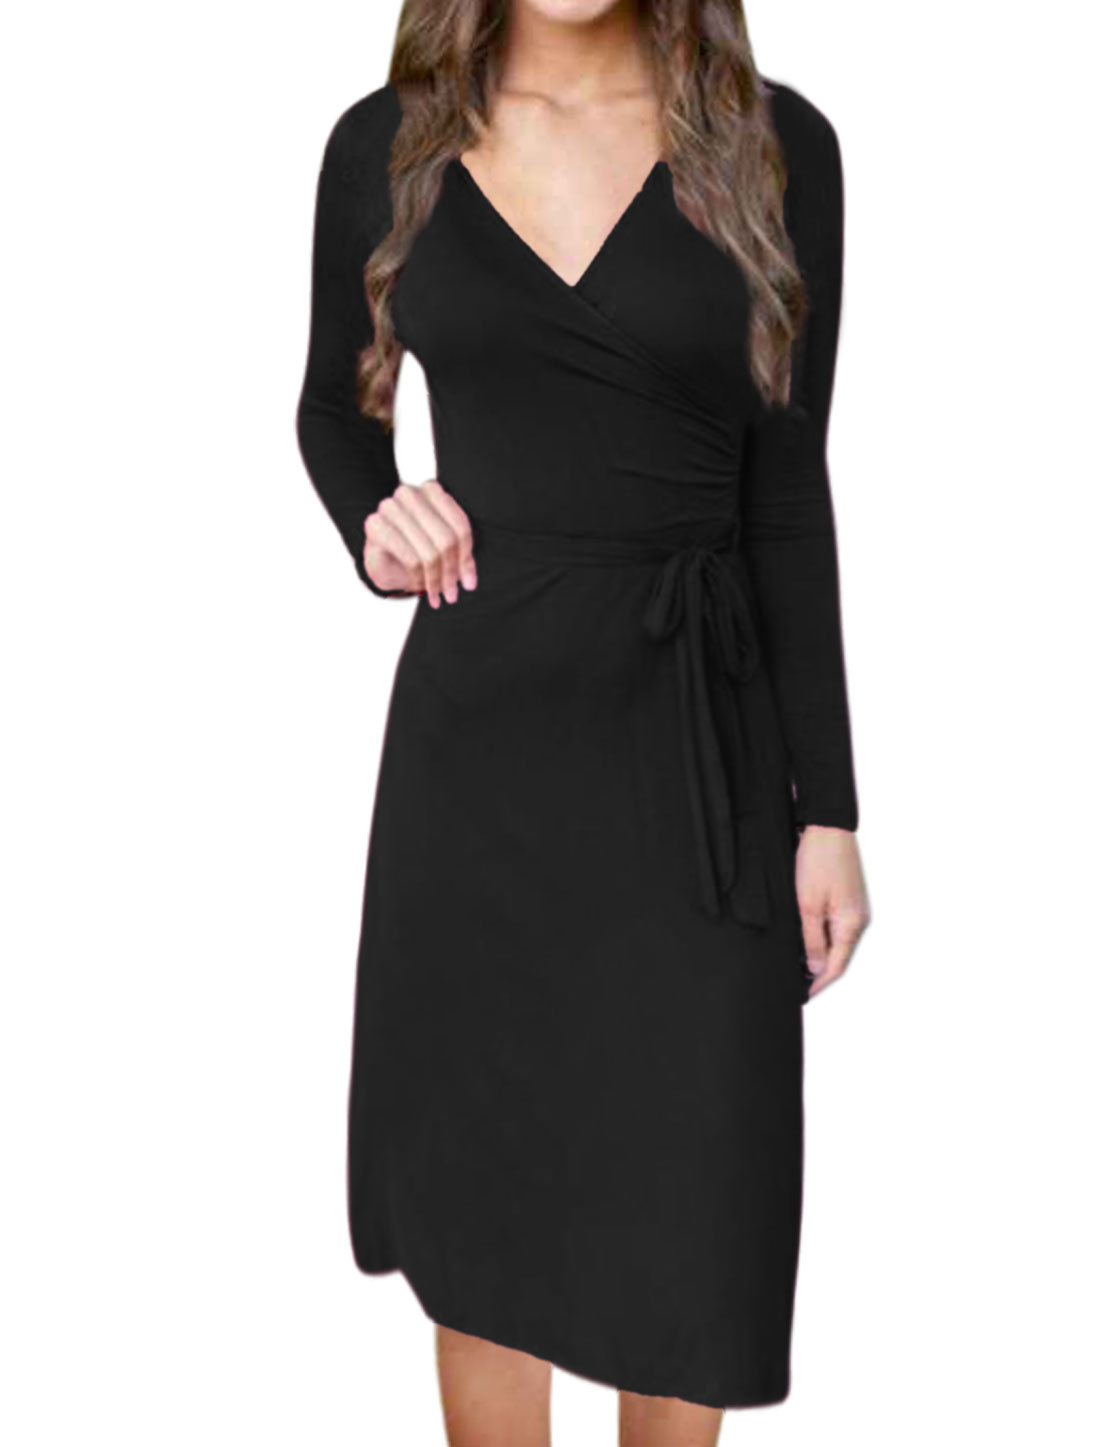 Women Crossover V Neck Waist String Midi Wrap Dress Black M